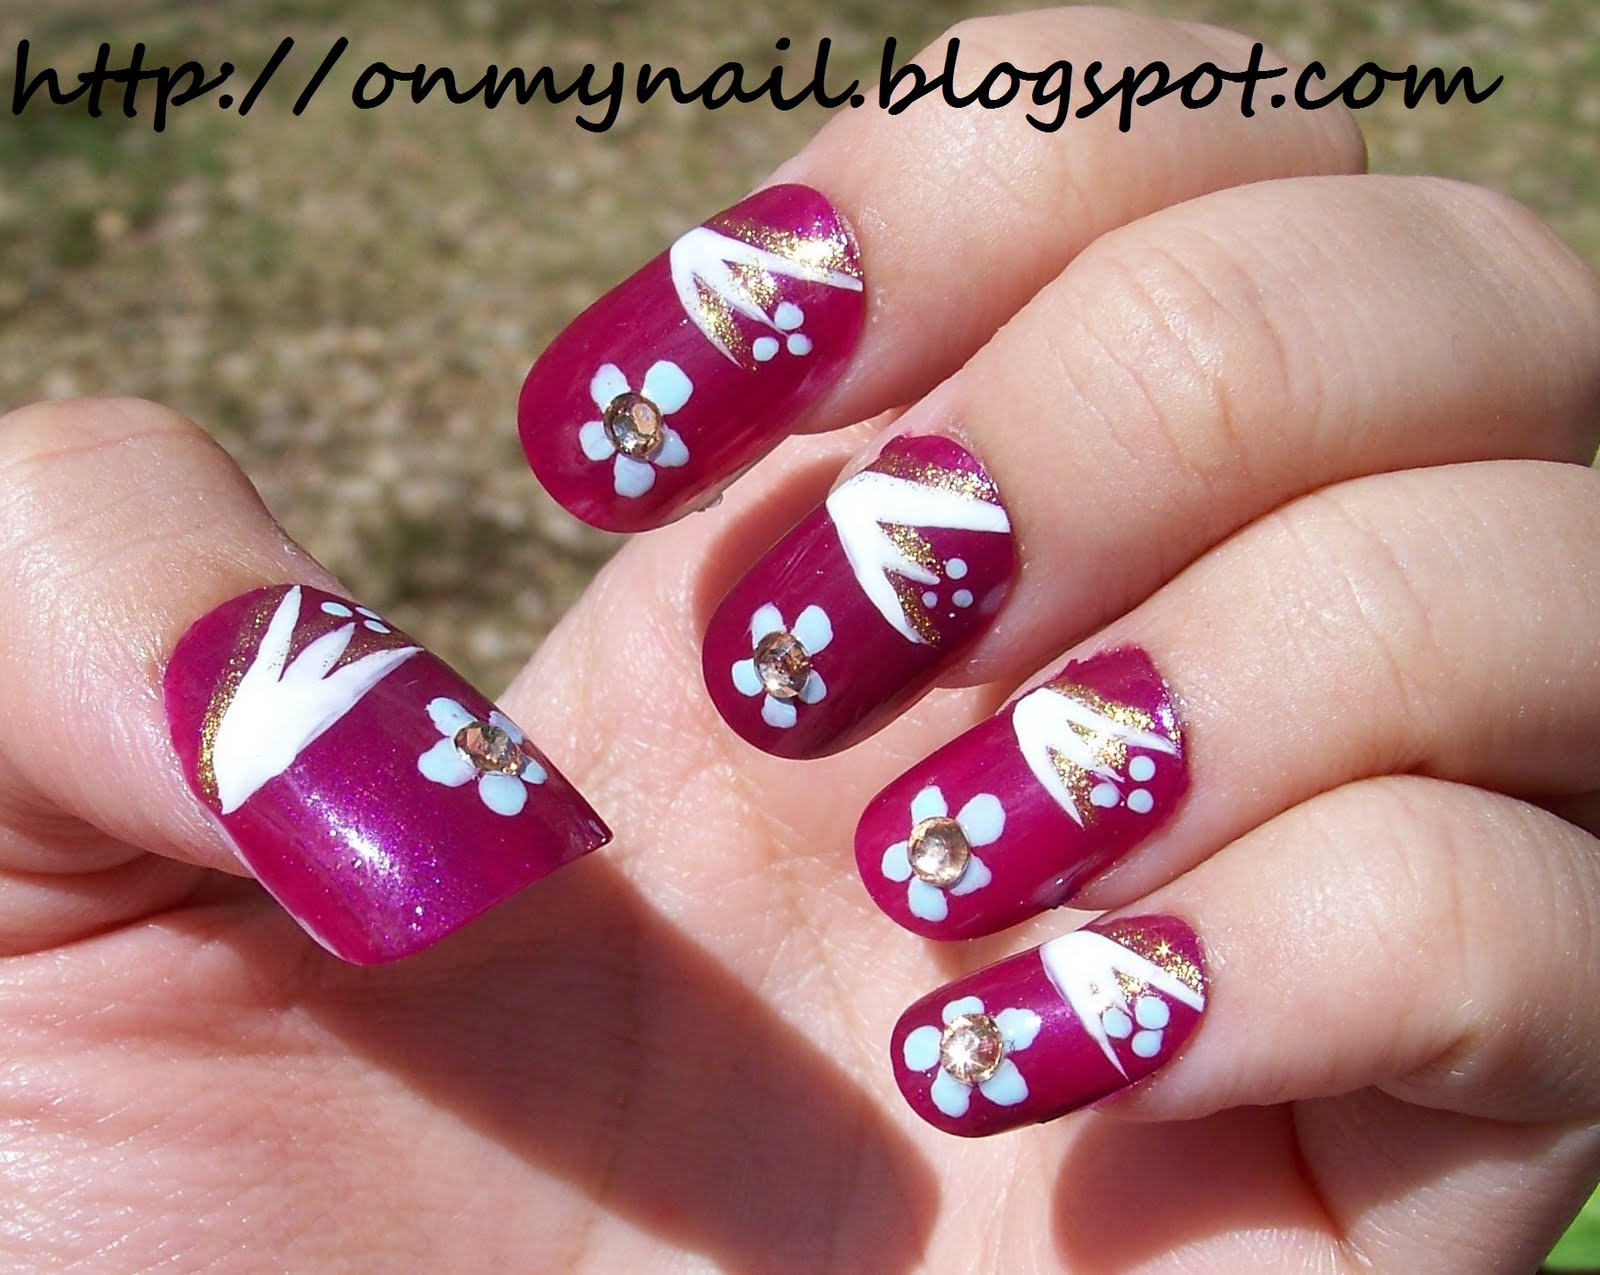 Fake Nails Designs Pictures - 2015 Best Nails Design Ideas